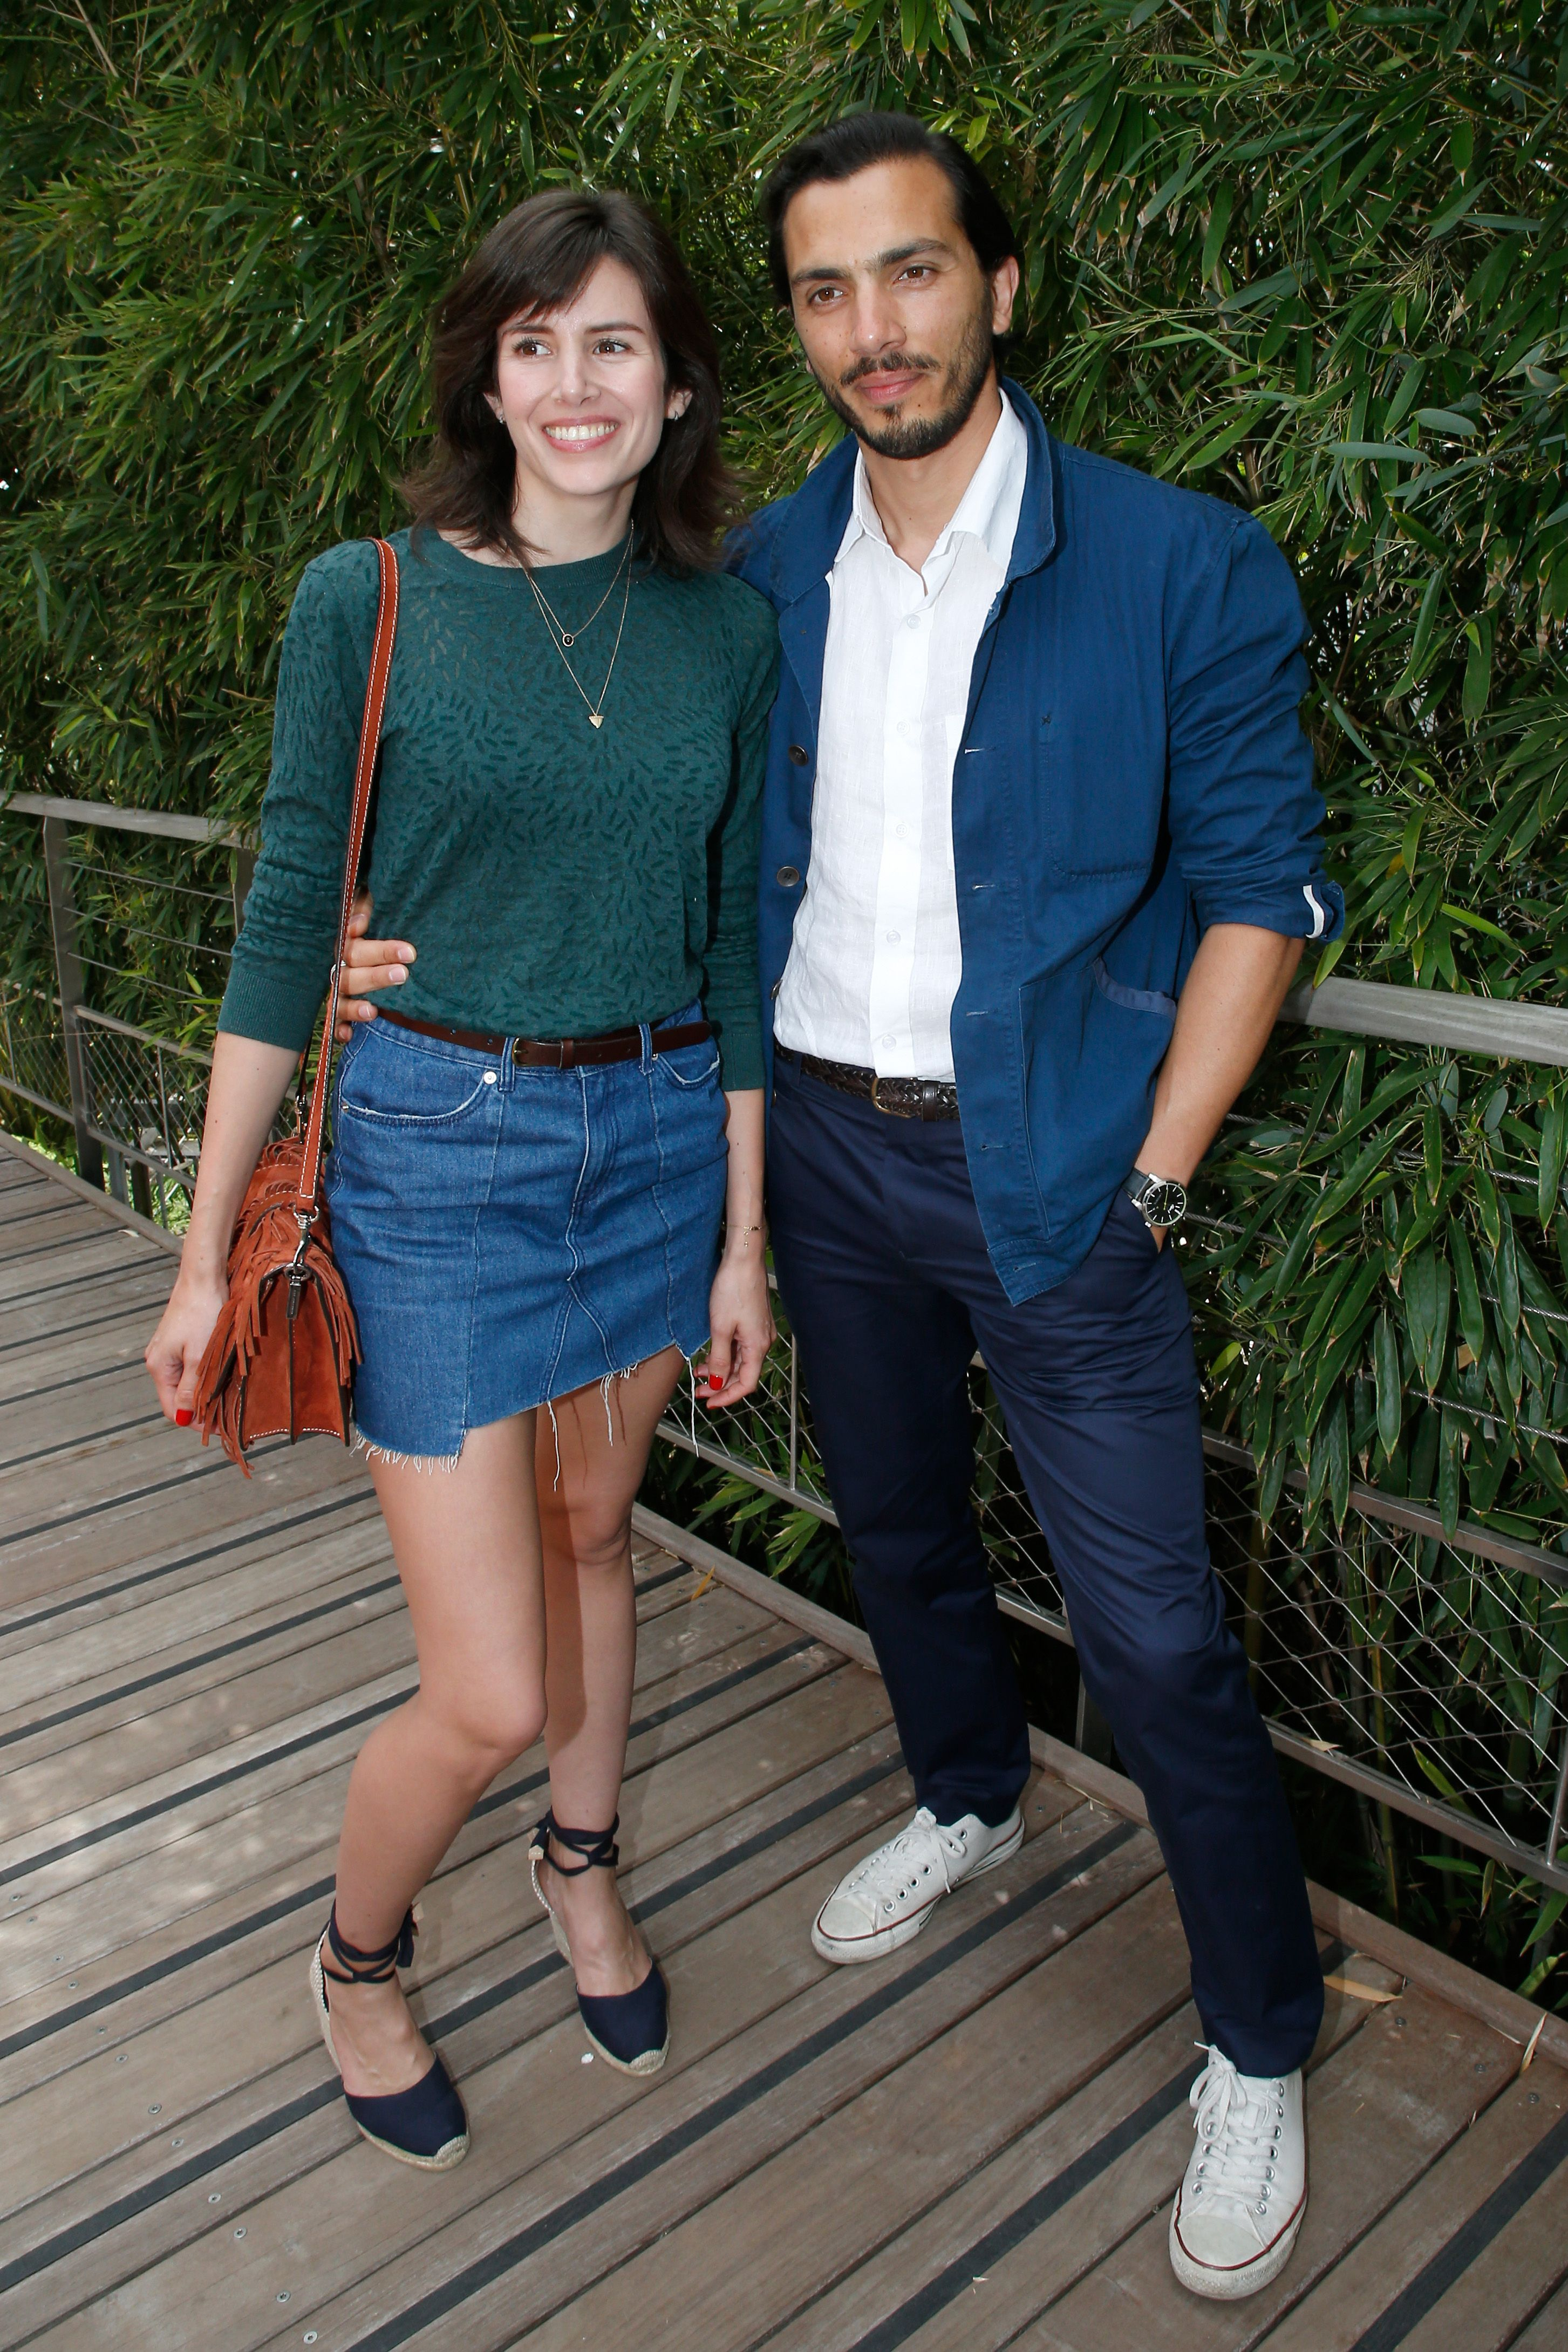 Les acteurs Louise Monot et son compagnon Samir Boitard à Roland Garros le 4 juin 2017 à Paris, France. | Photo : Getty Images